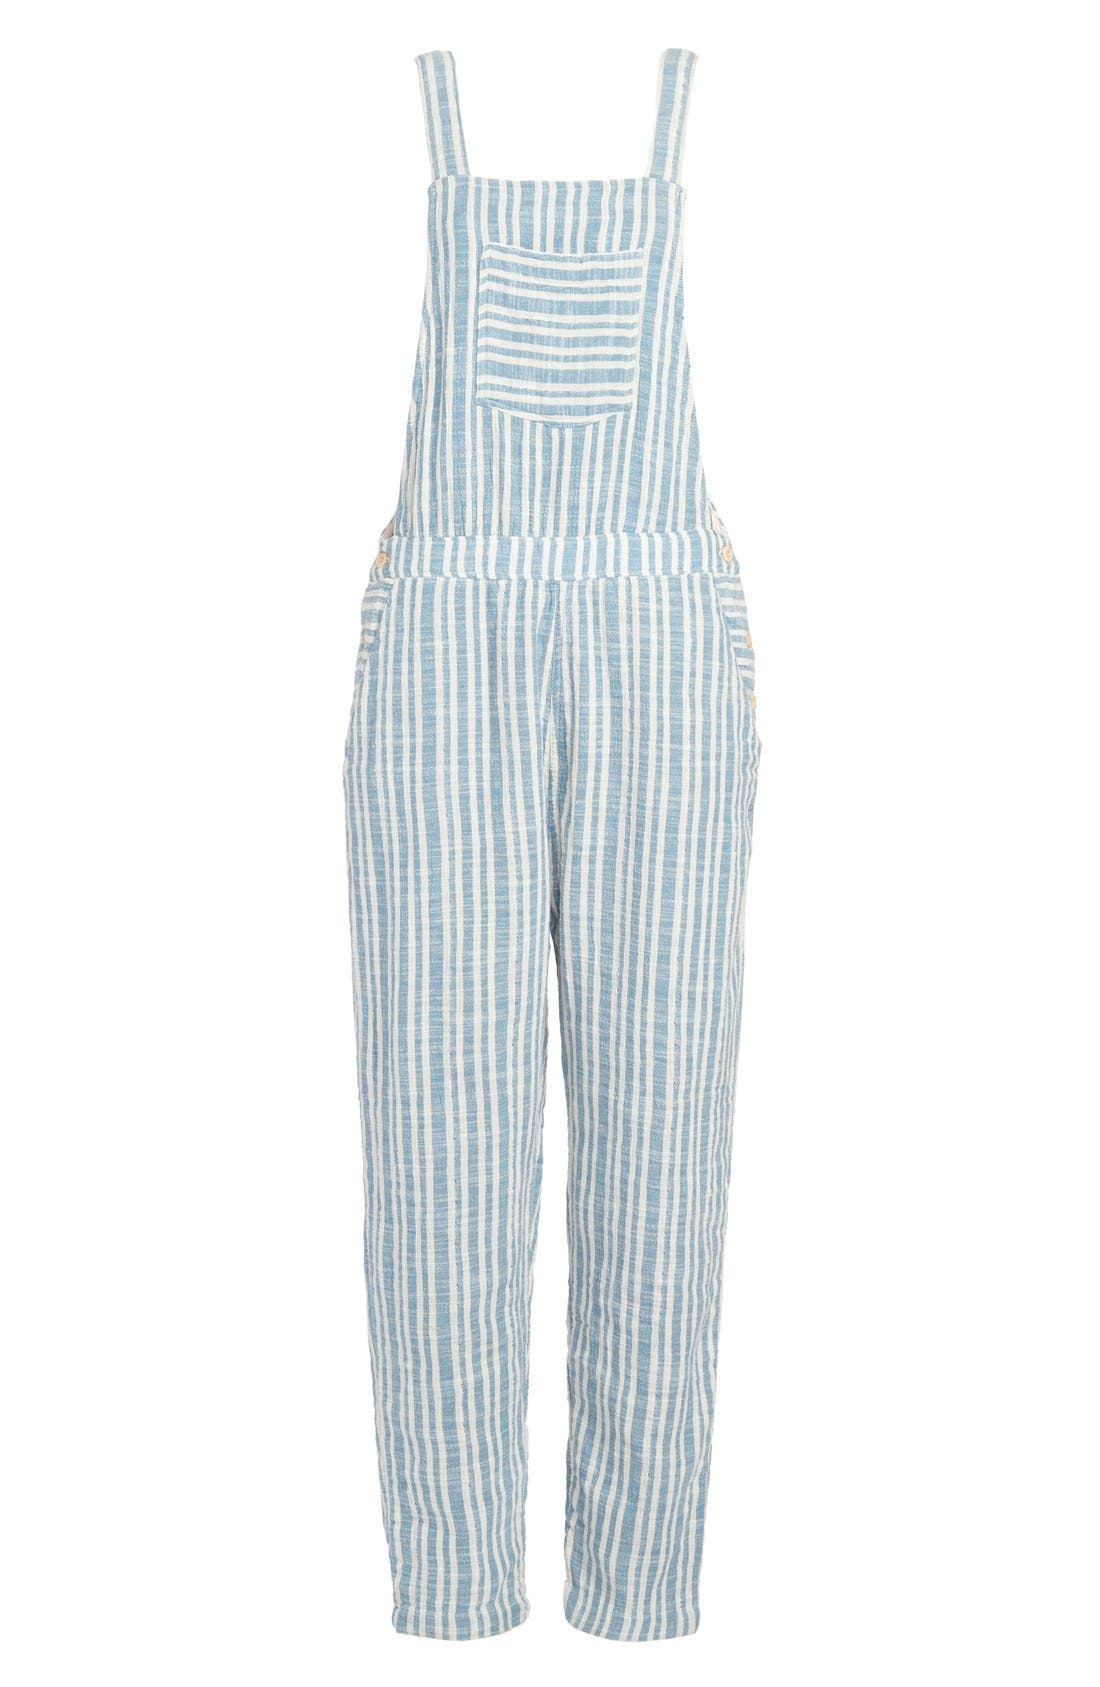 ace&jig Overalls,                             Main thumbnail 1, color,                             020